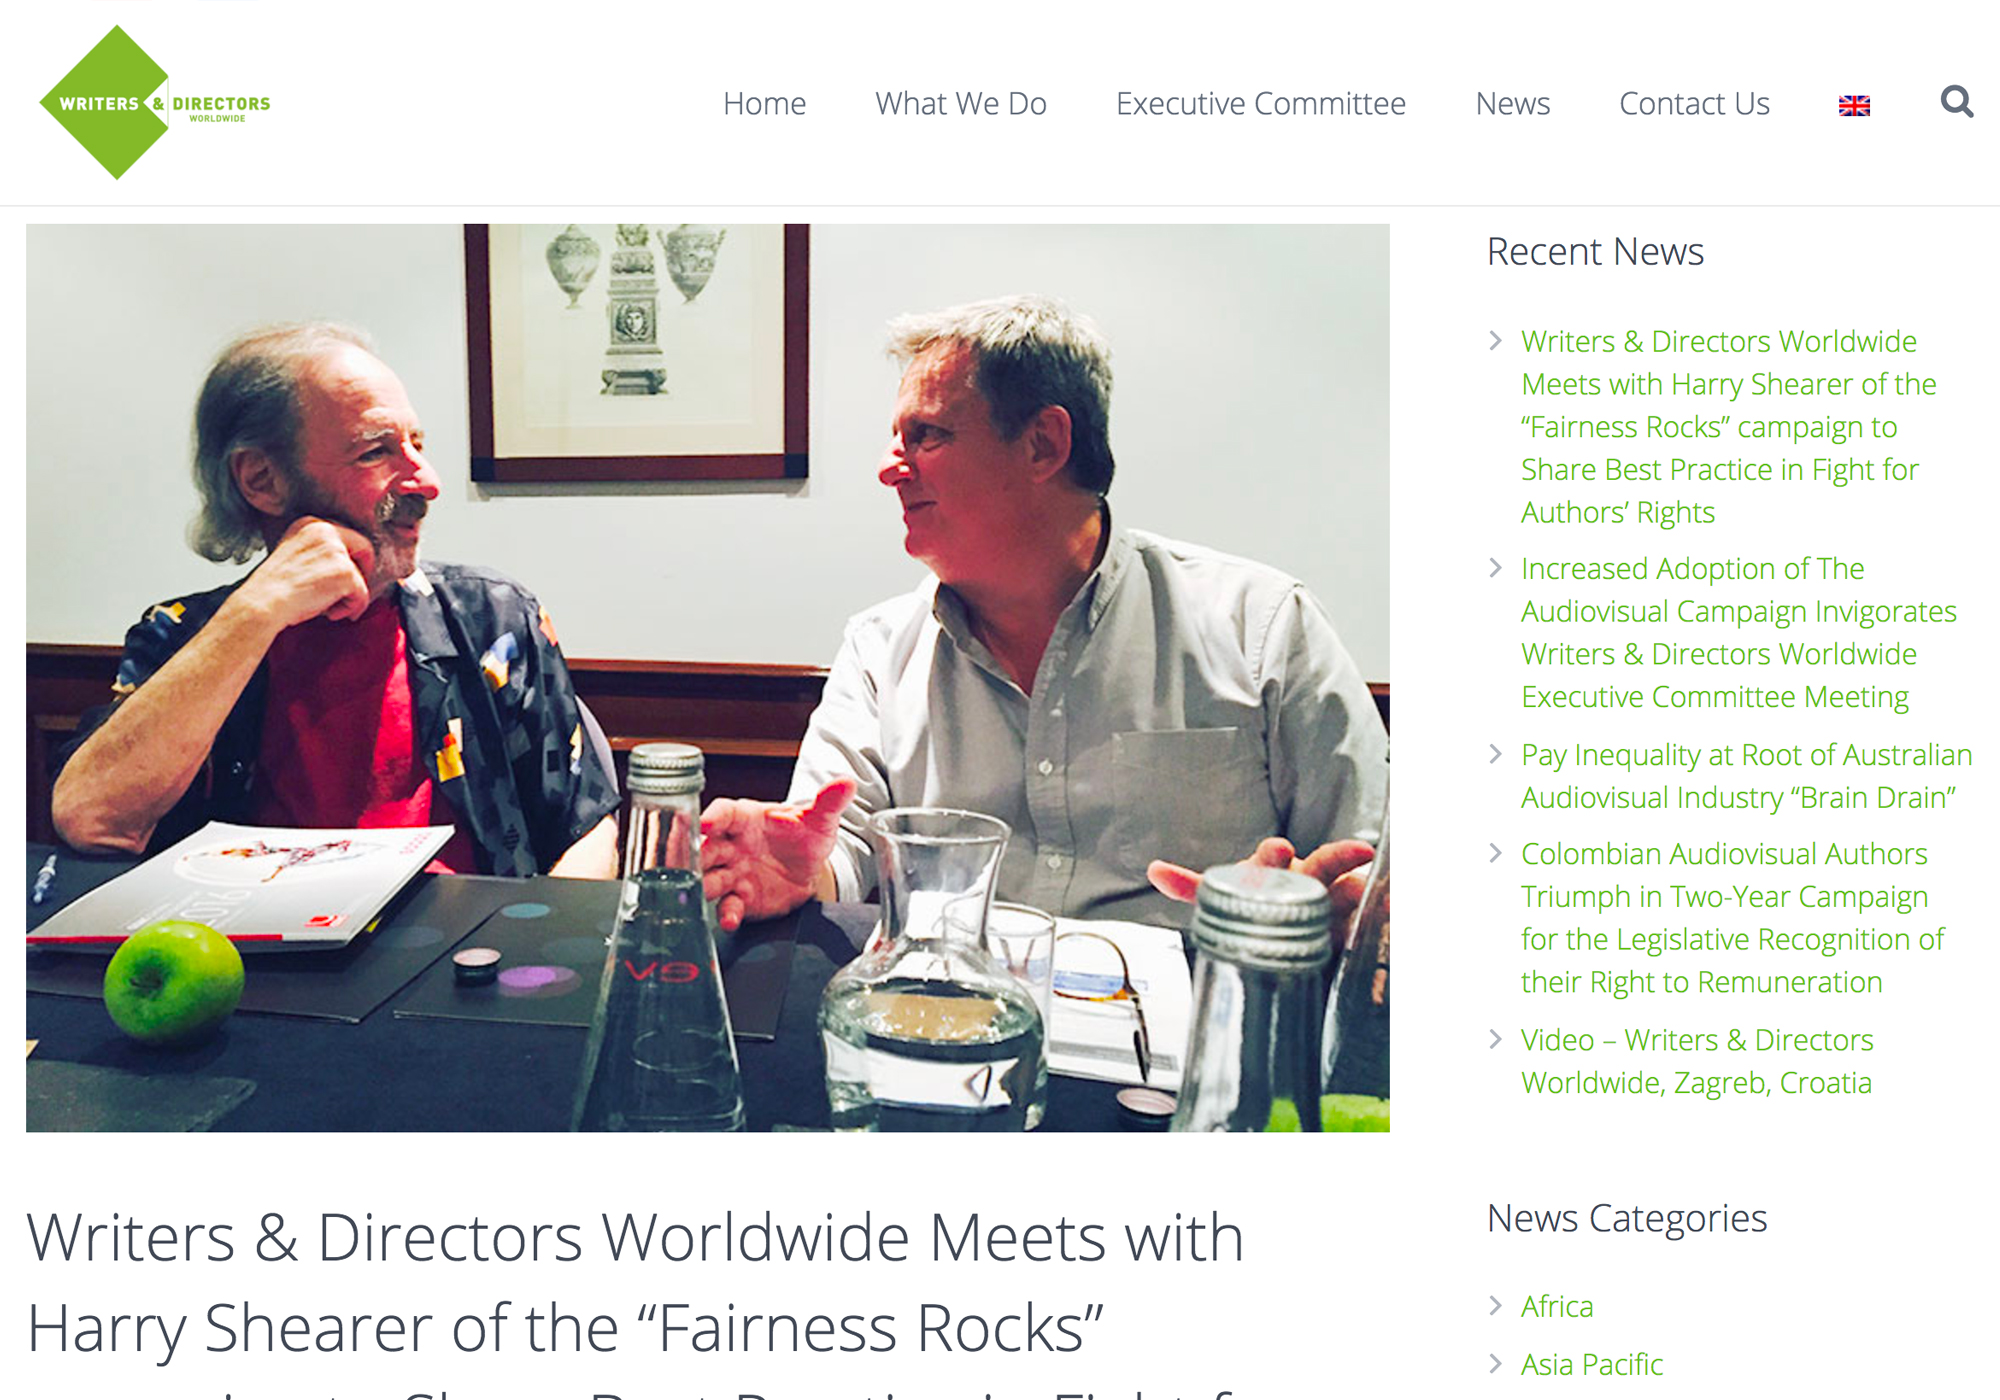 """Fairness Rocks News Writers & Directors Worldwide Meets with Harry Shearer of the """"Fairness Rocks"""" campaign to Share Best Practice in Fight for Authors' Rights"""